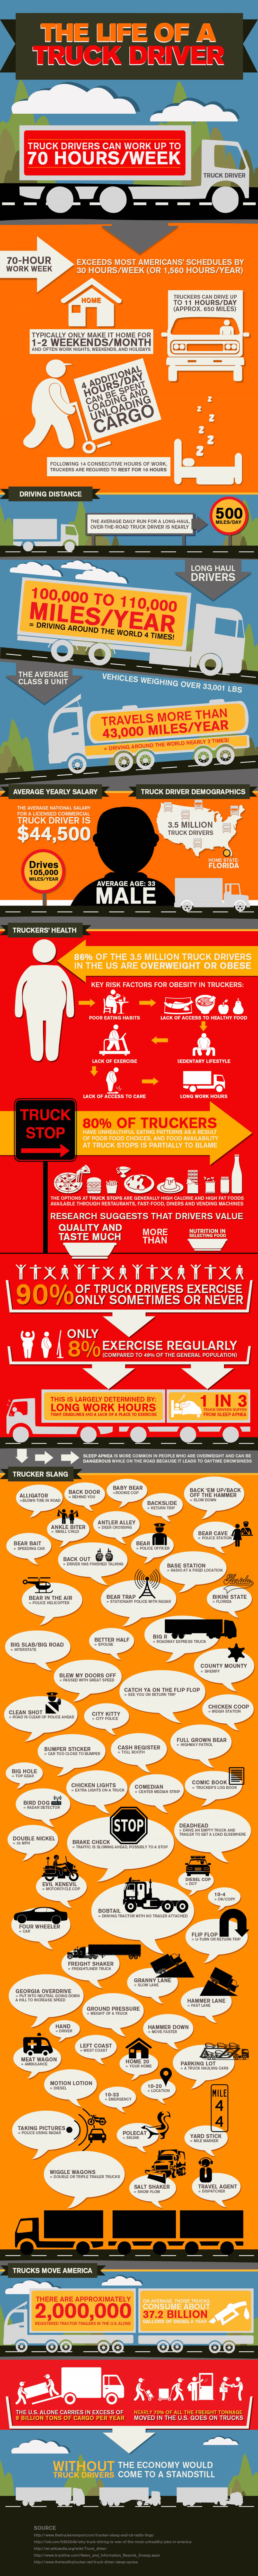 03 the-life-of-a-truck-driver_52e2f27d71826_w1500